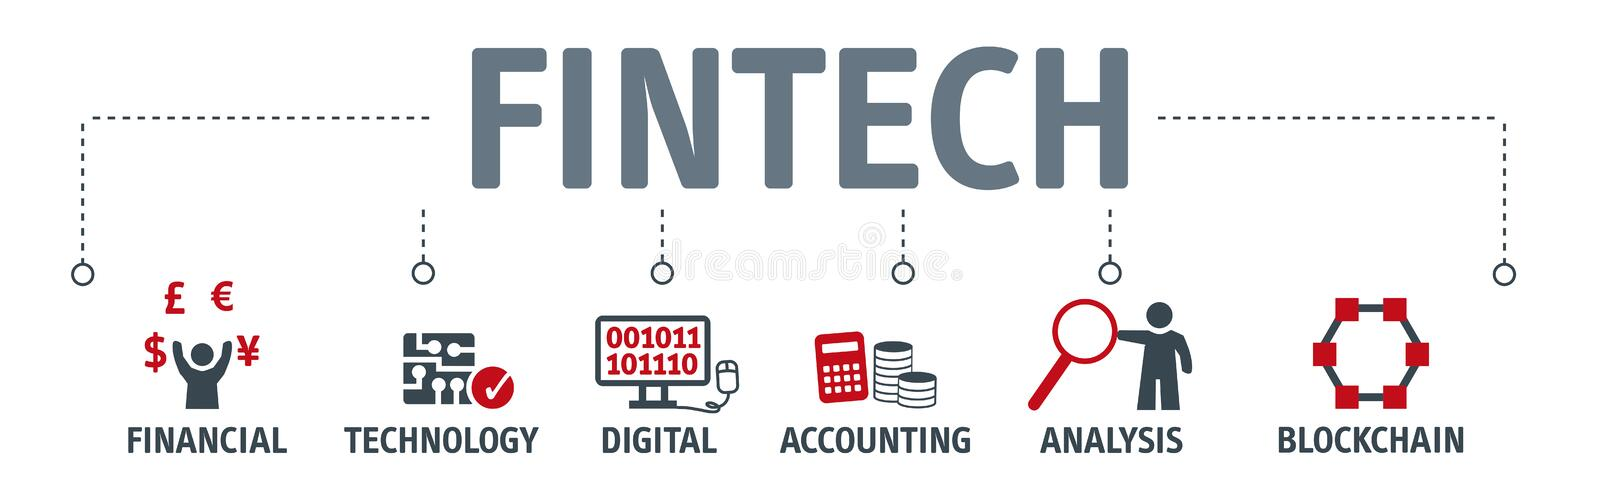 Banner Fintech Investment Financial Internet Technology Concept royalty free illustration